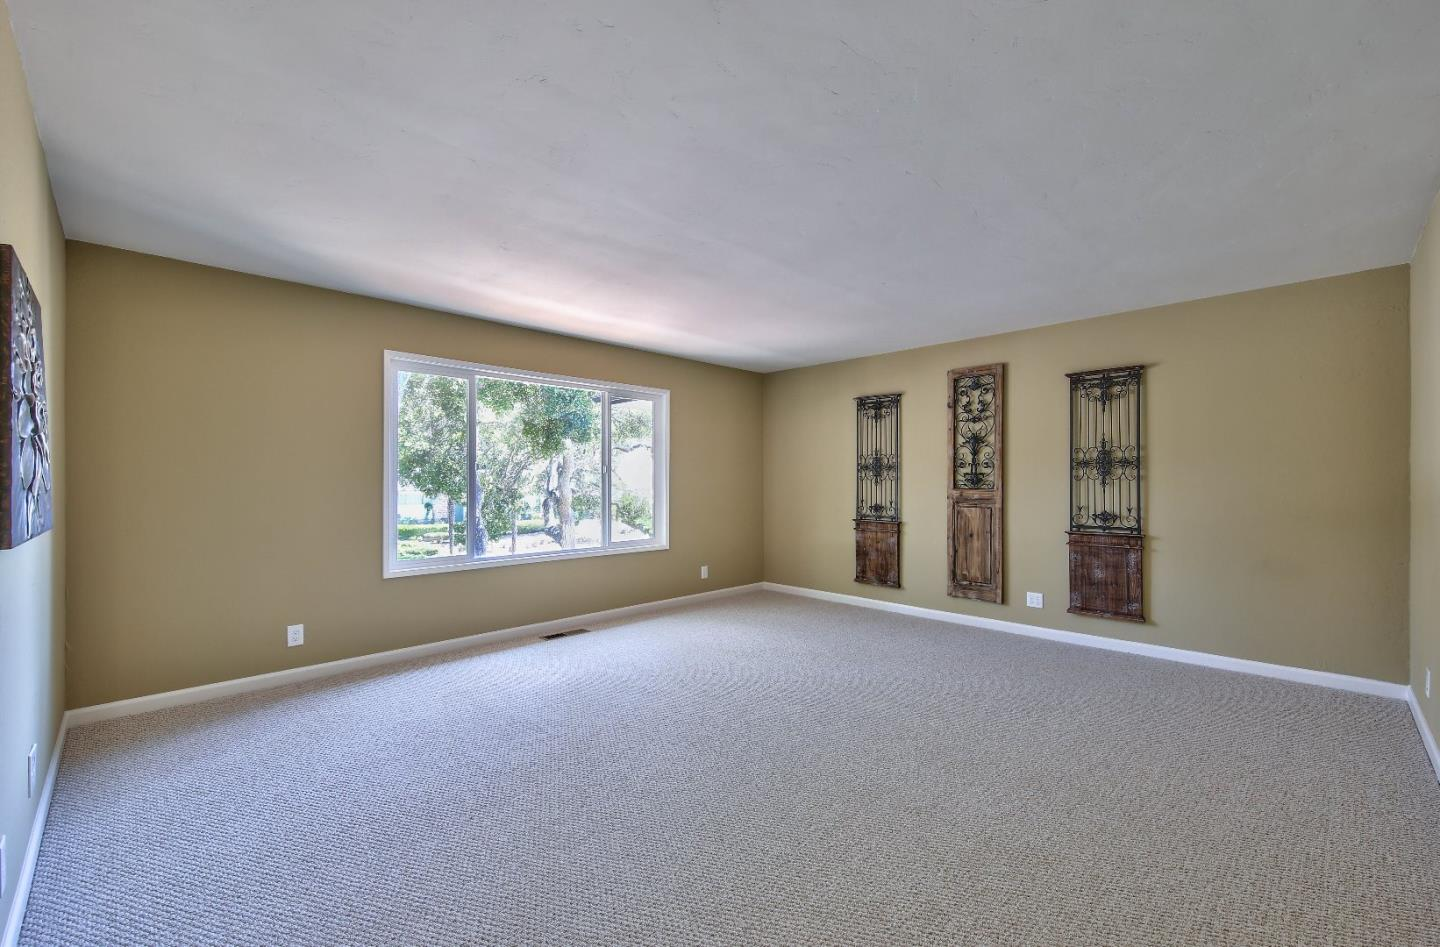 Additional photo for property listing at 9440 Valley Oak Way  Salinas, Kalifornien 93907 Vereinigte Staaten